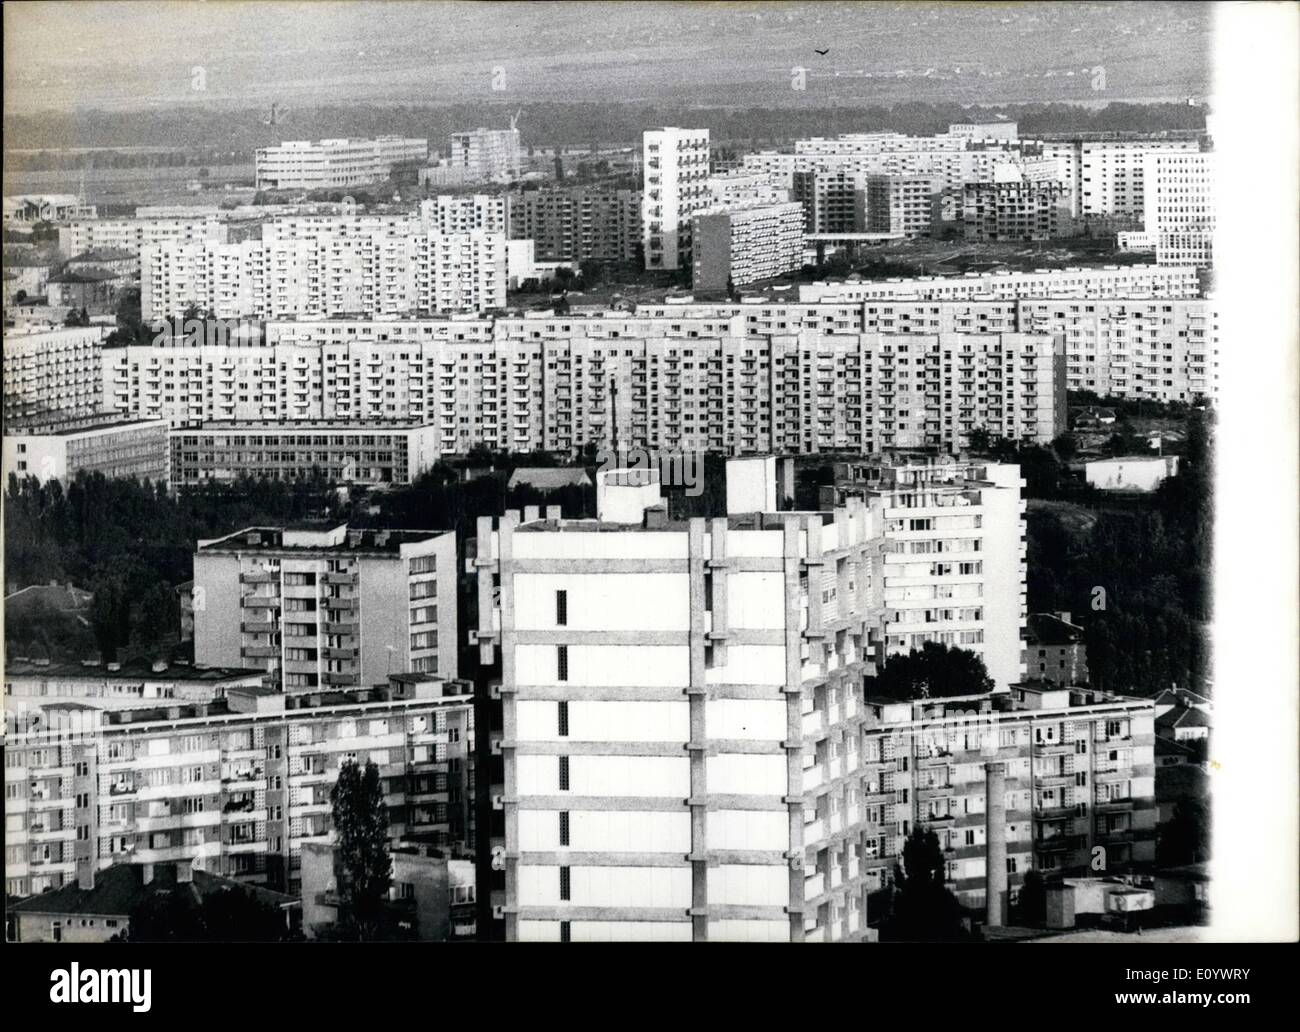 Aug. 08, 1971 - Increase of Housing construction in Sofia: While before World War II the Bulgarian capital Sofia had 350,000 inhabitants, now they are over a million. This fact imposed accelerated housing construction in all quarters of Sofia. In the Eastern part of the city a whole belt of modern housing estates has been built - ''Iskar'', ''Mladost'', ''Iztok'', ''Durvenitza'' and others. In the period 1971-75 65,000 flats with 162,000 rooms will be built in Sofia while in the period 1965-70 40,070 flats with 89,848 rooms were built - Stock Image